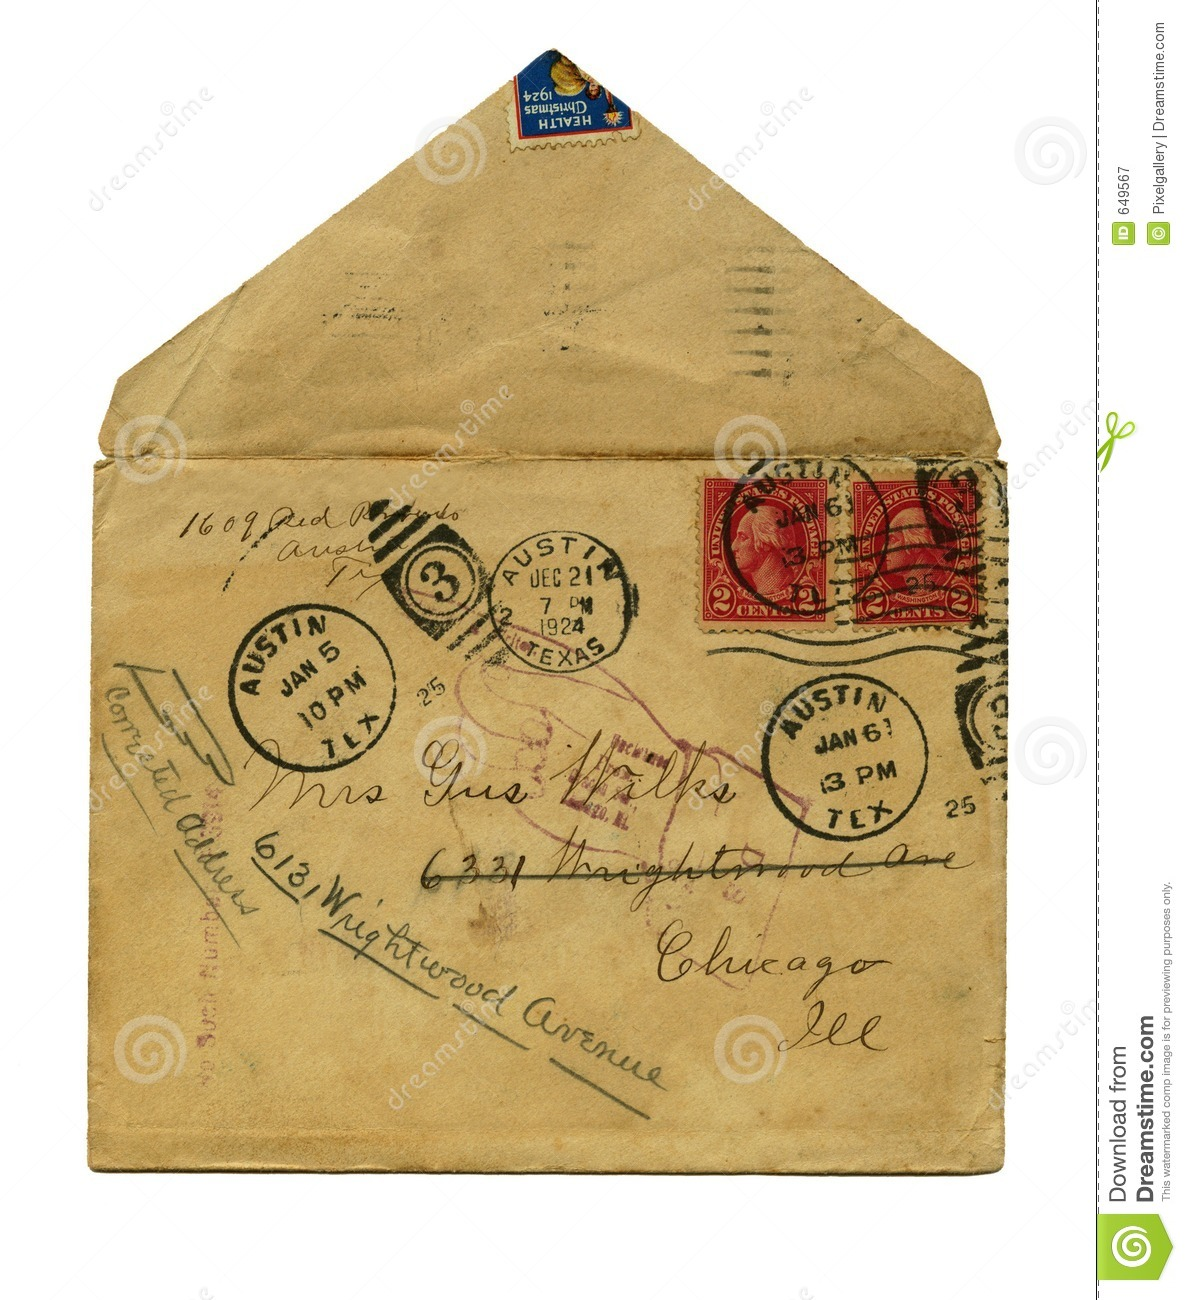 Old letter envelope postmarkded 1924. Envelope has clipping path ...